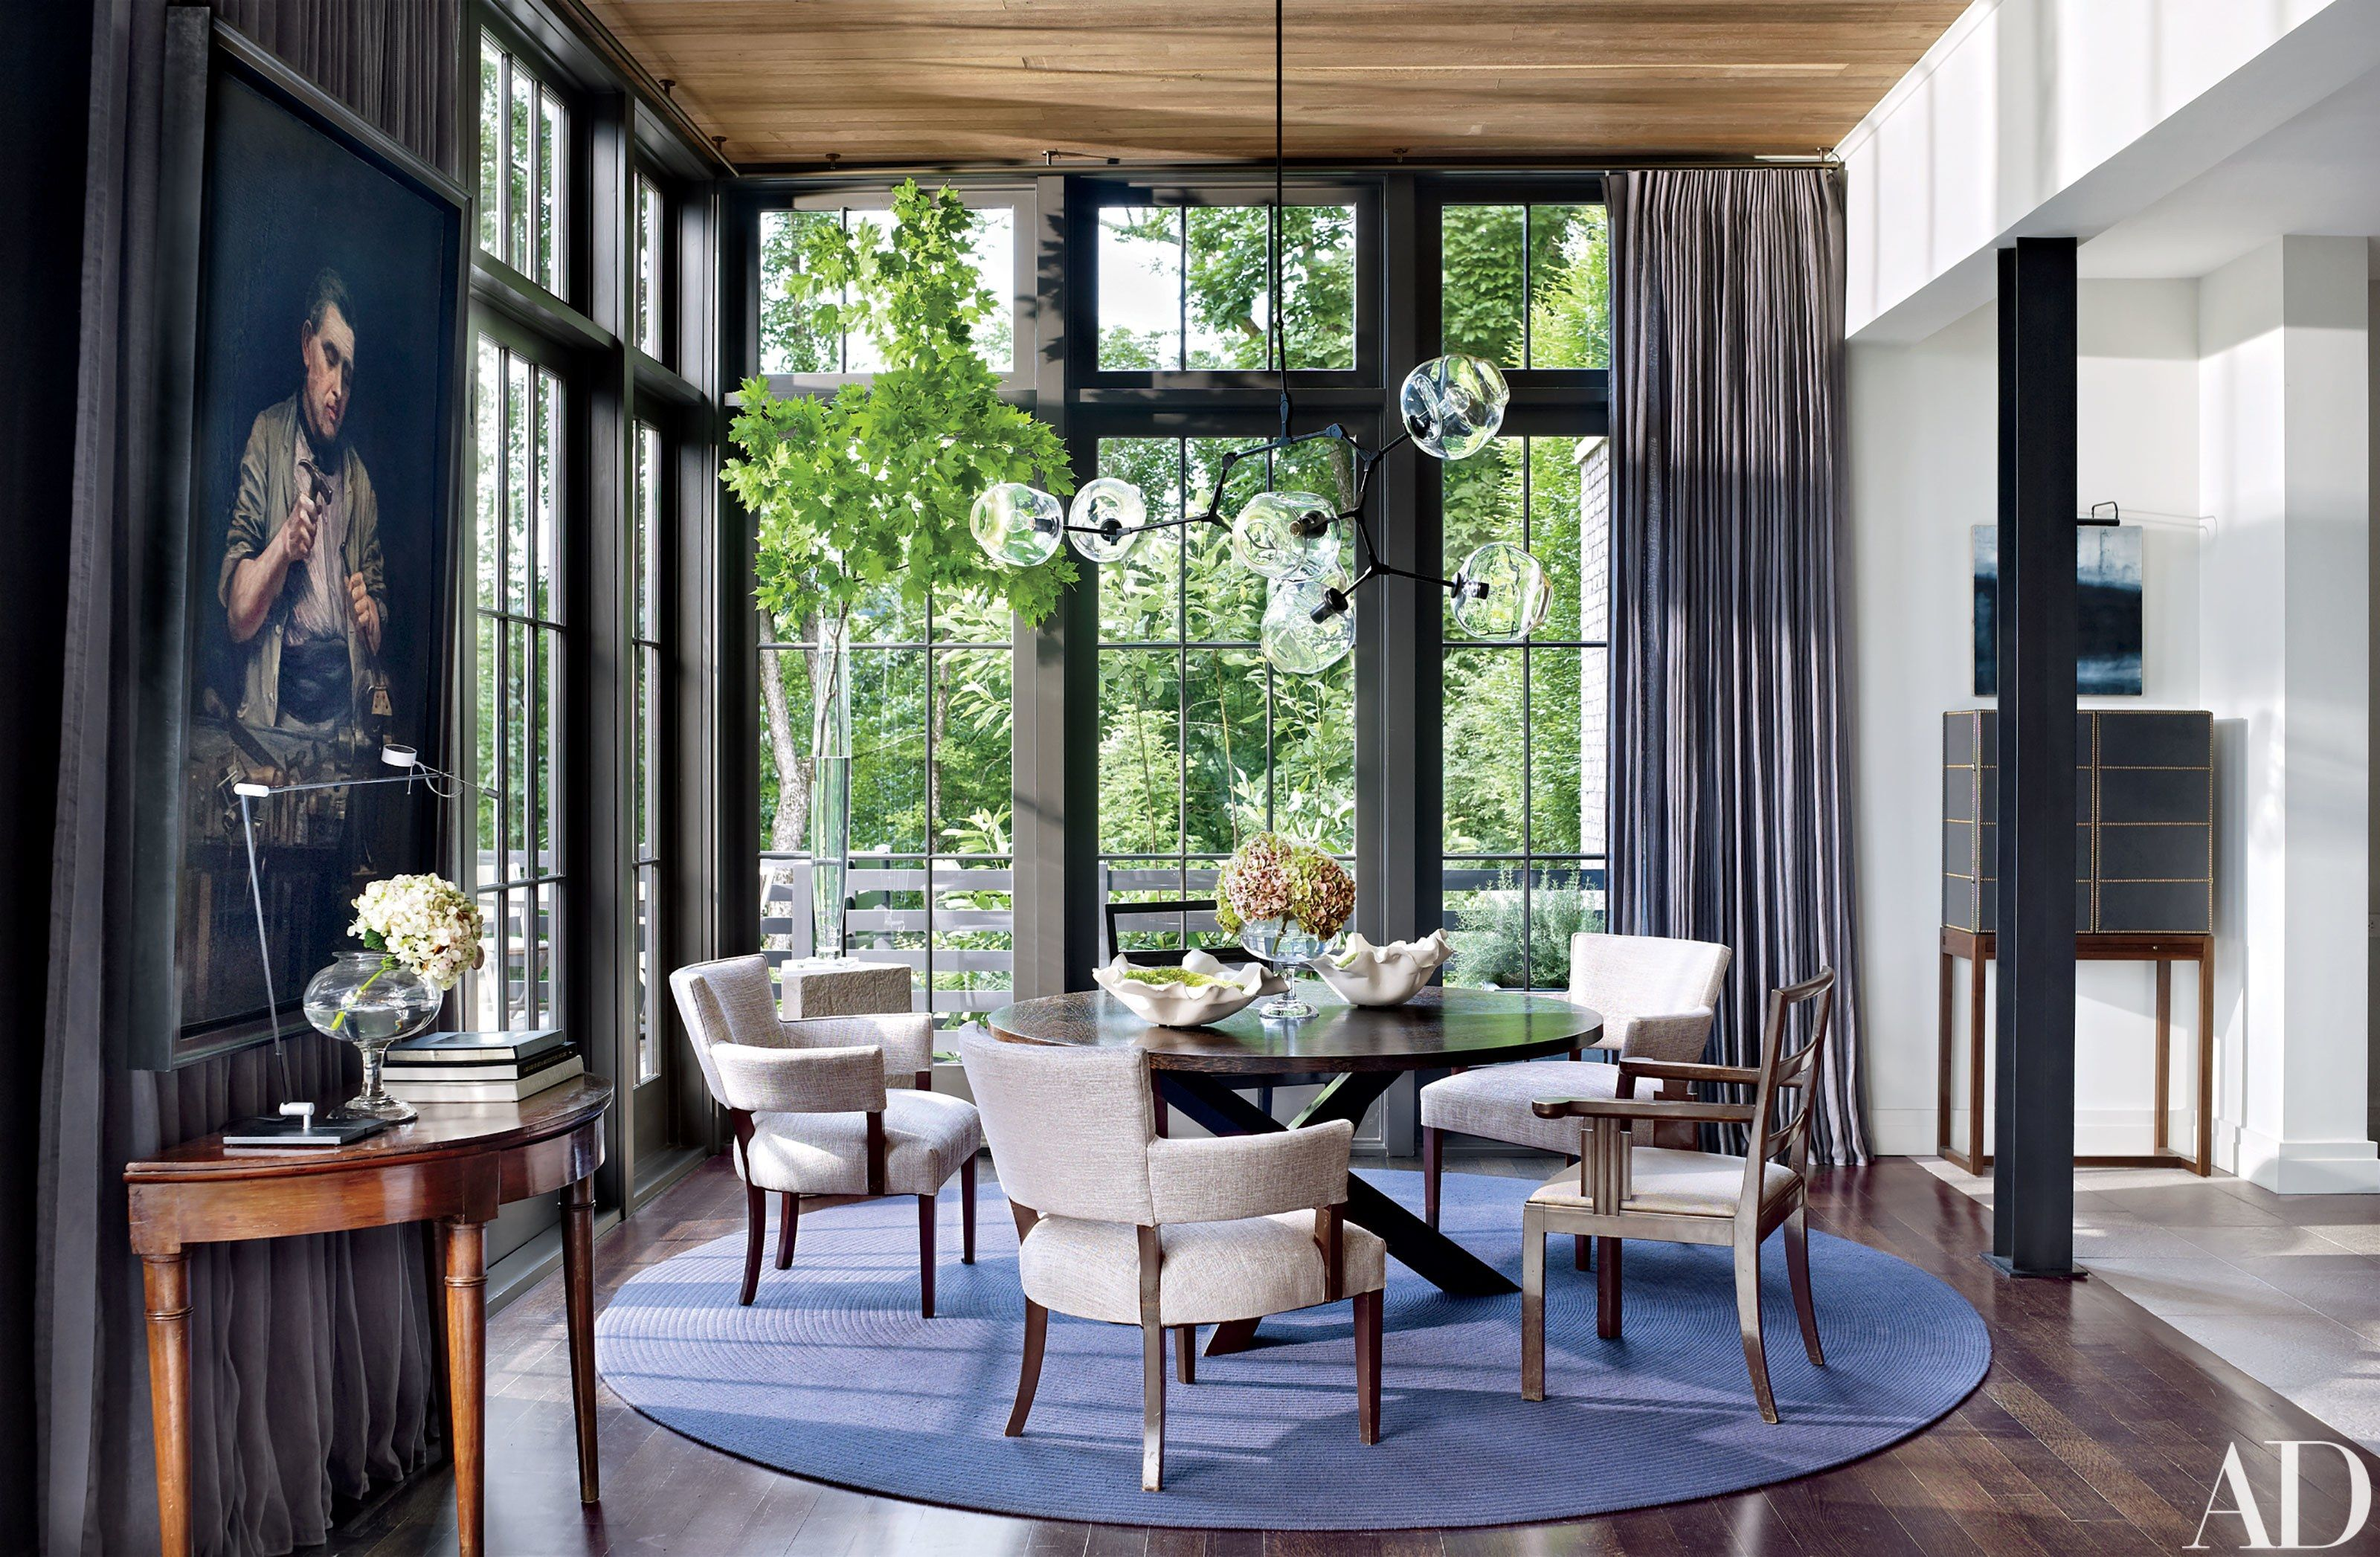 Tour ray booth and john sheas grand hilltop home in nashville photos architectural digest